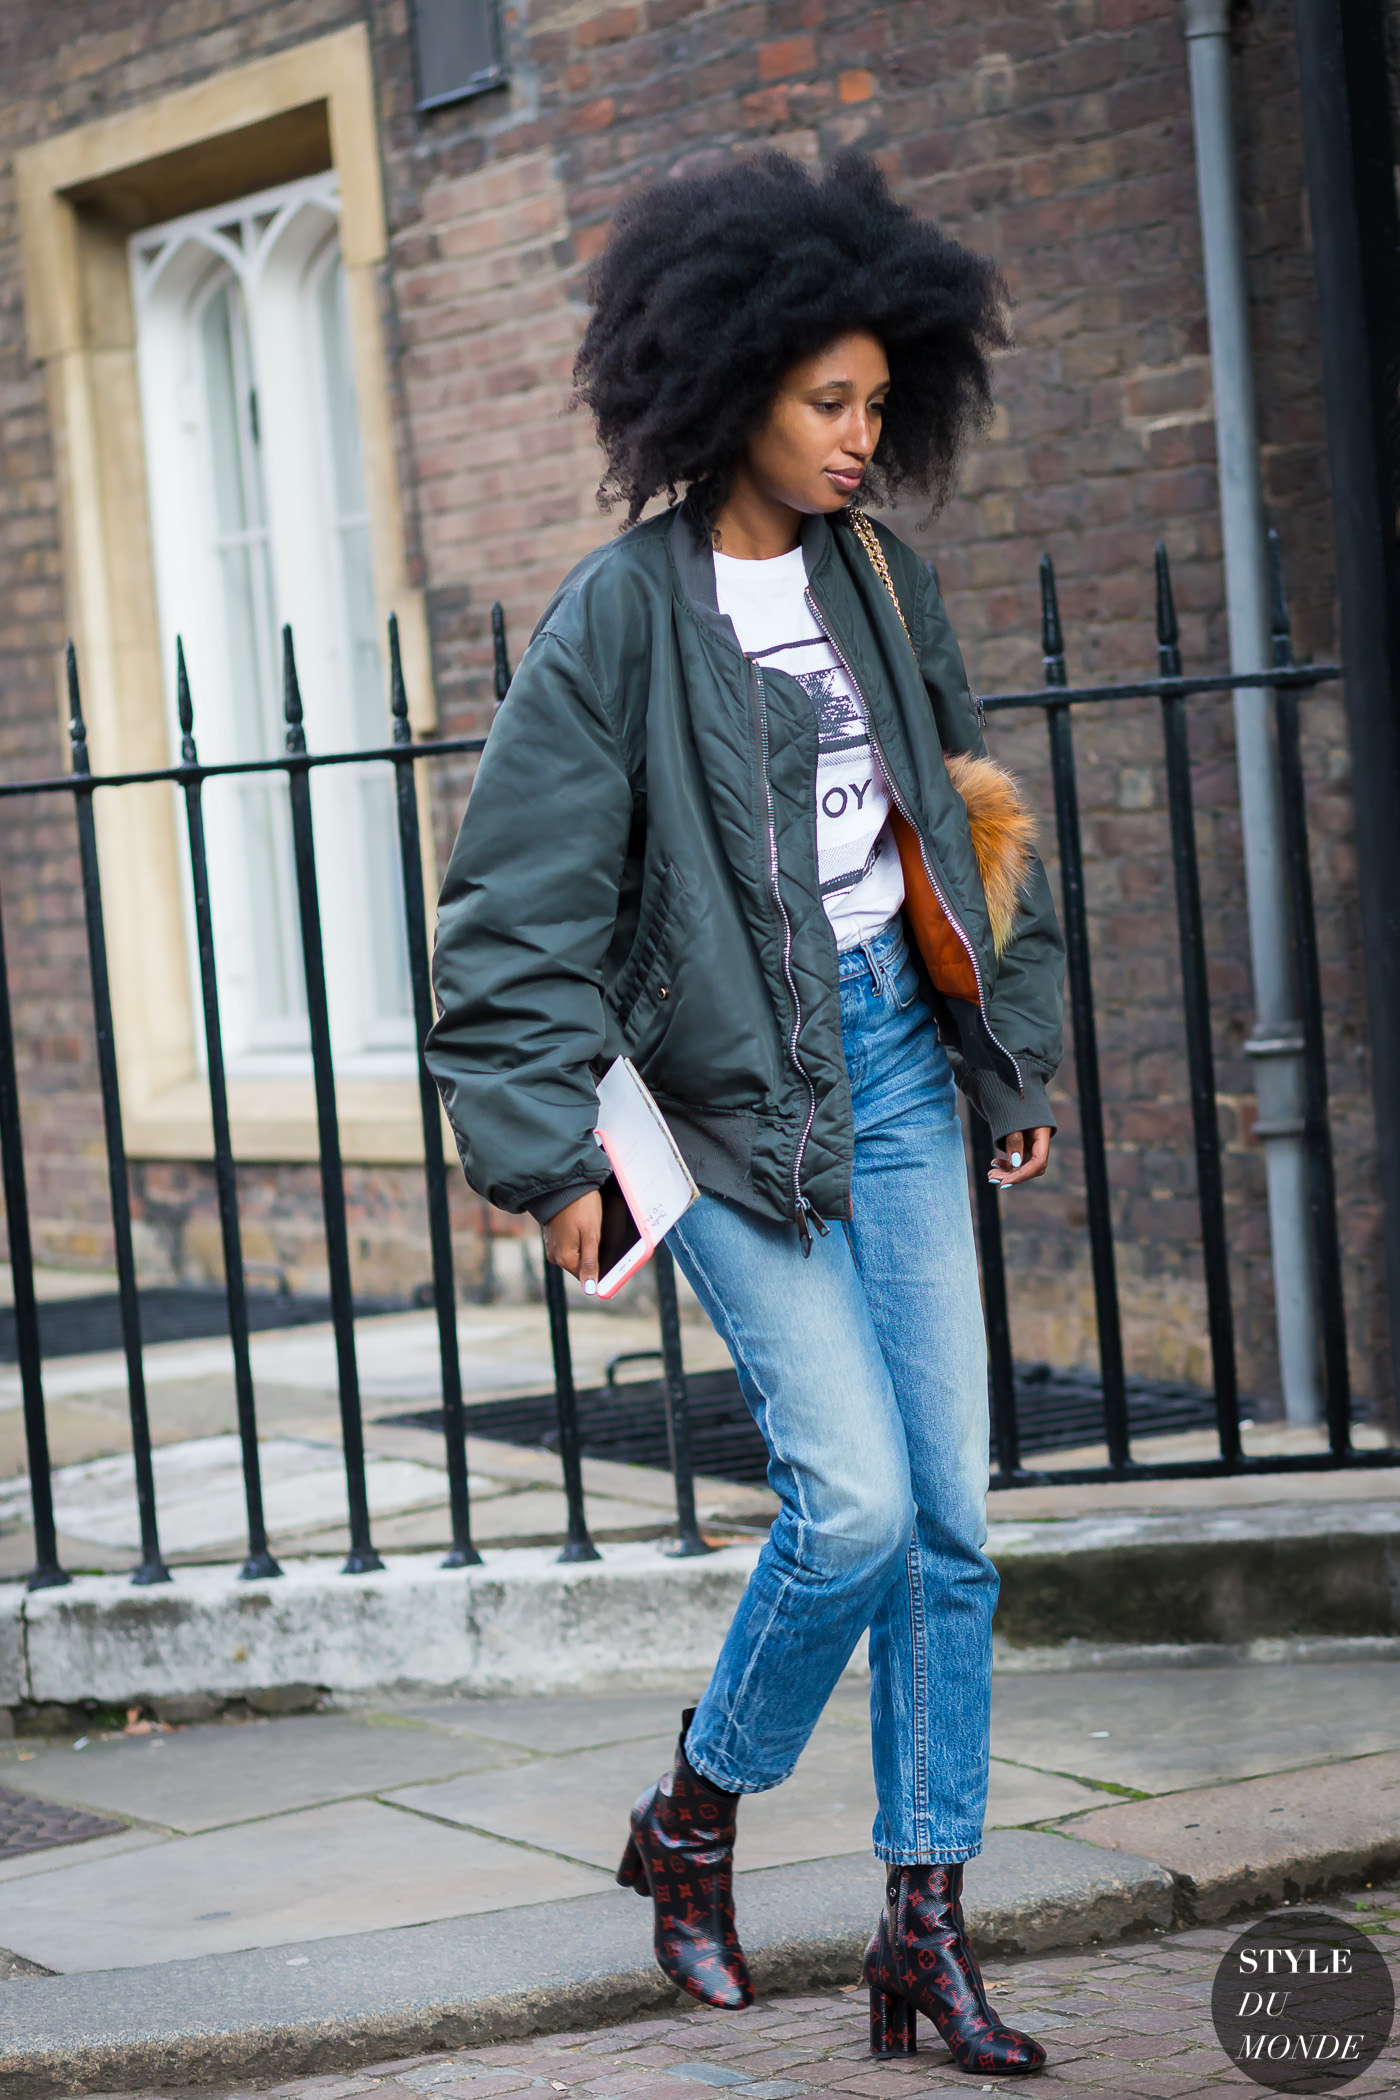 Julia Sarr-Jamois Street Style Street Fashion Streetsnaps by STYLEDUMONDE Street Style Fashion Photography